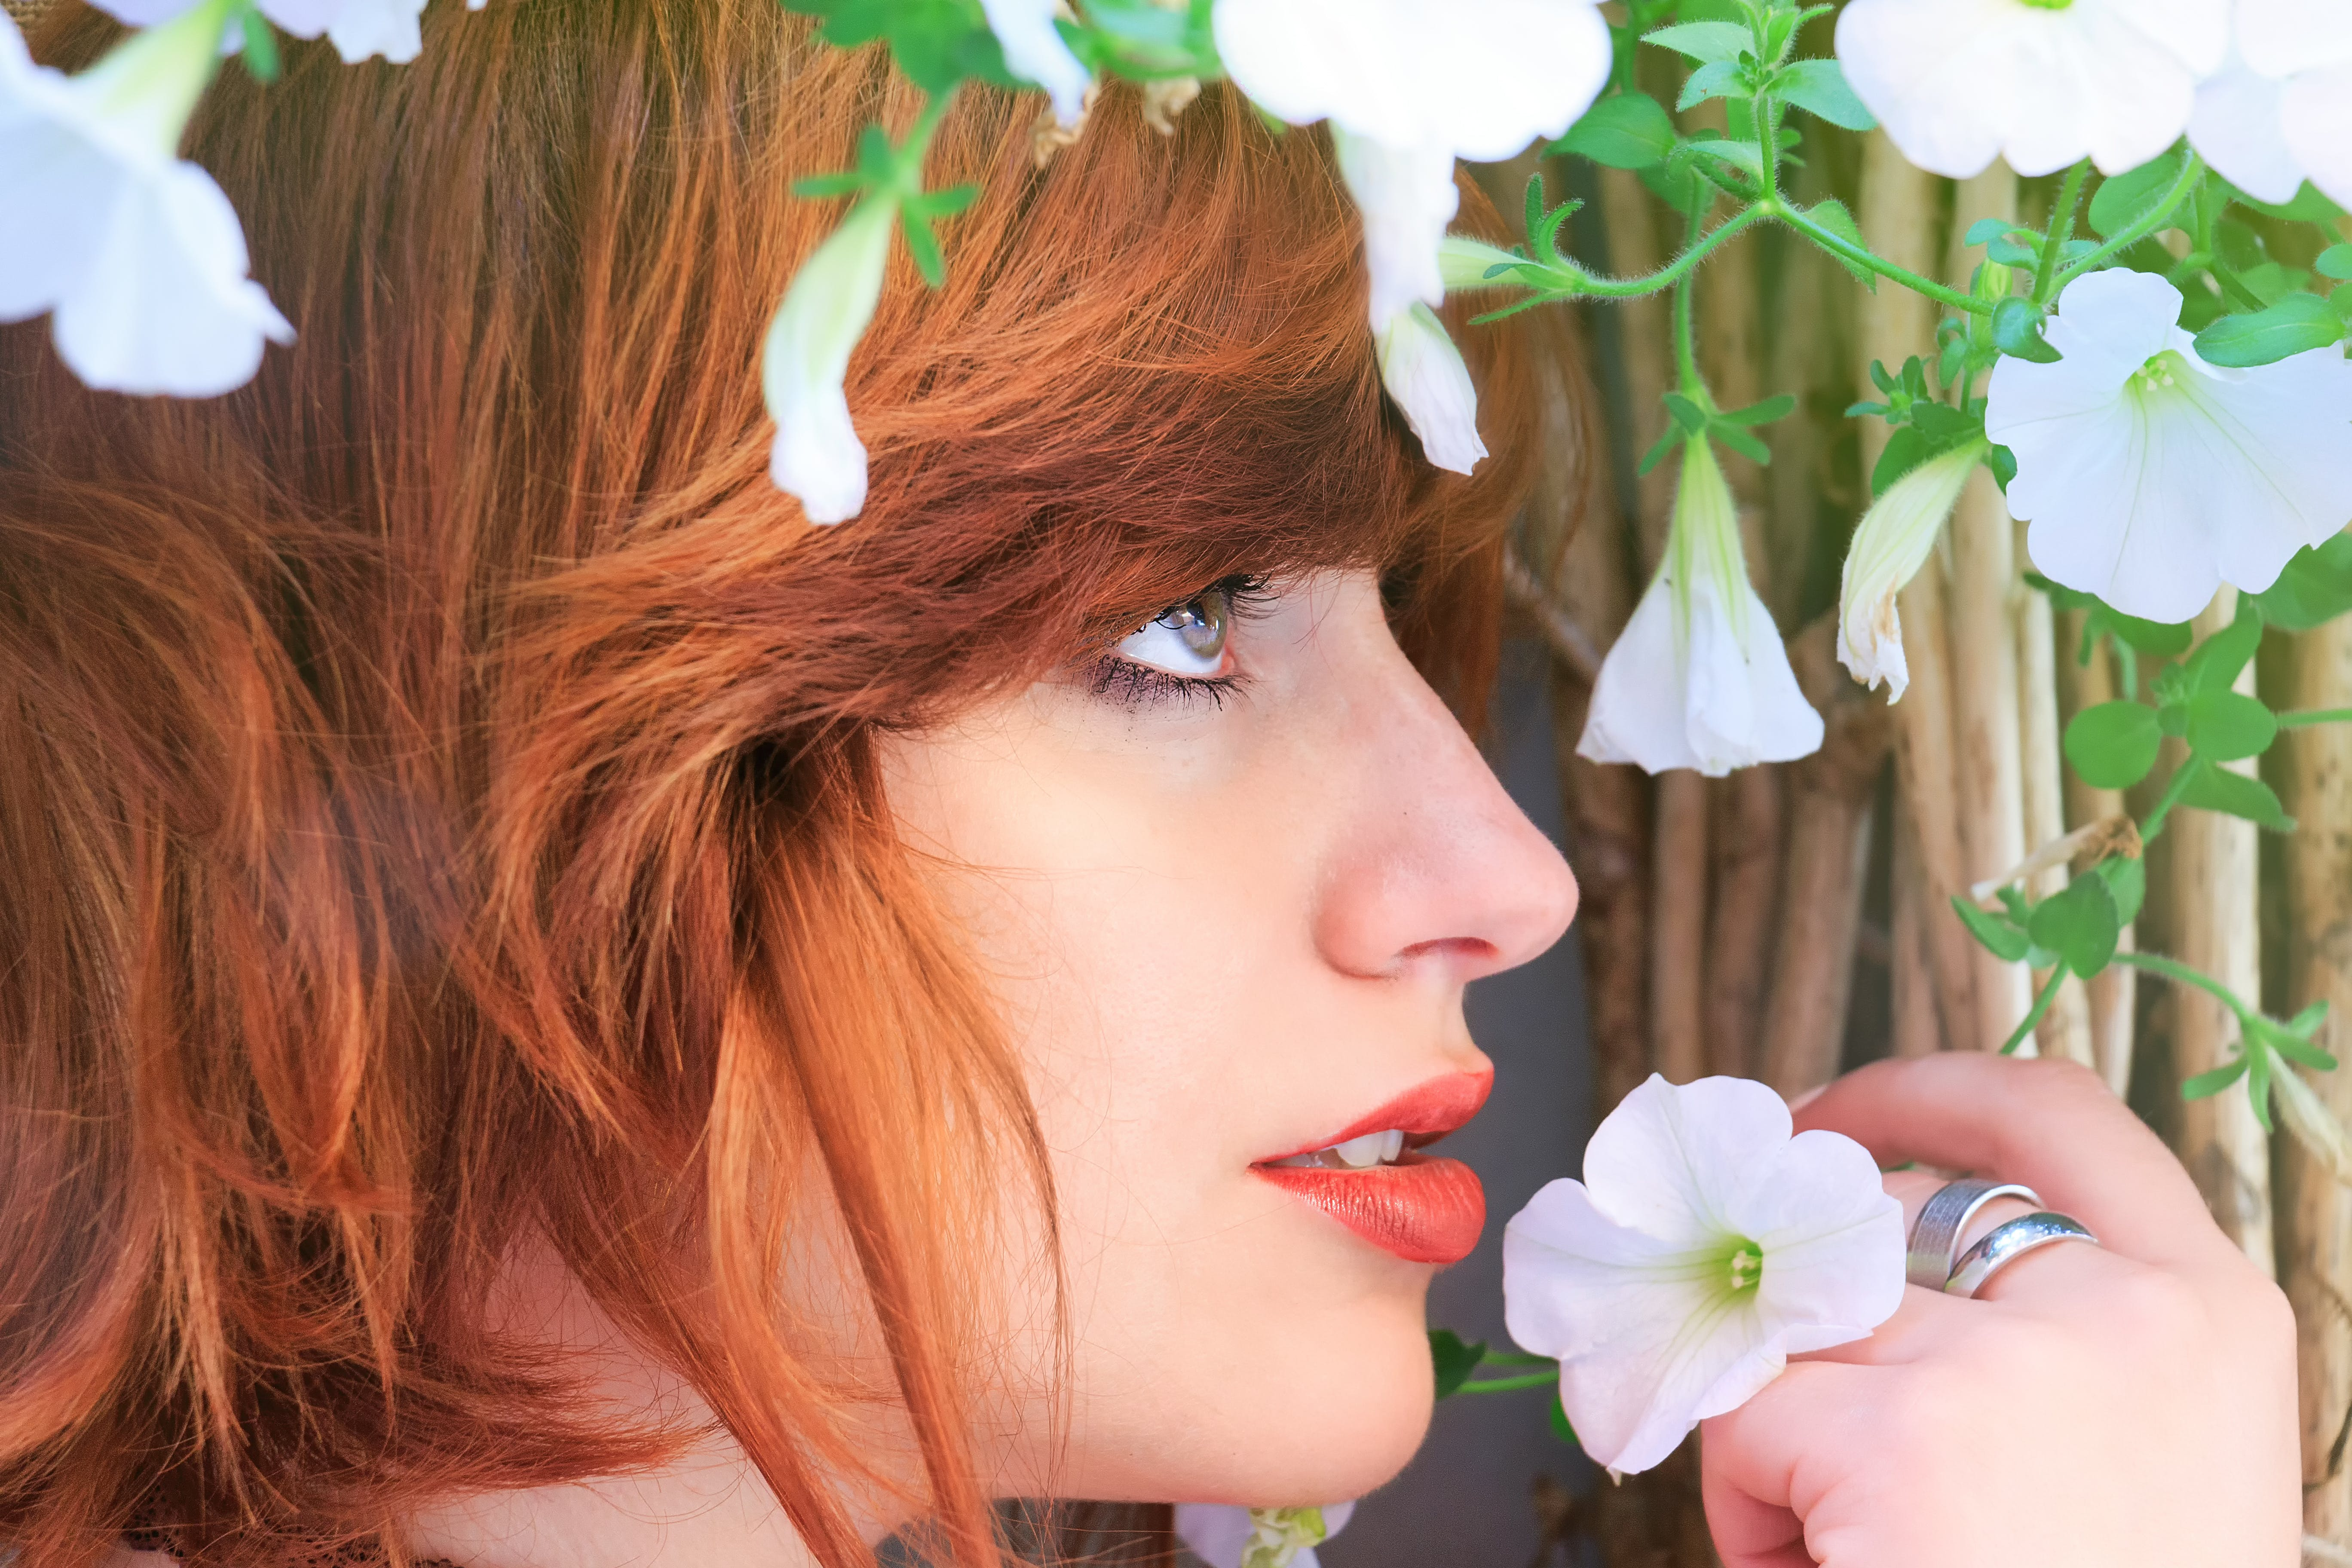 Close-up Photo Of Woman Holding White Petaled Flower